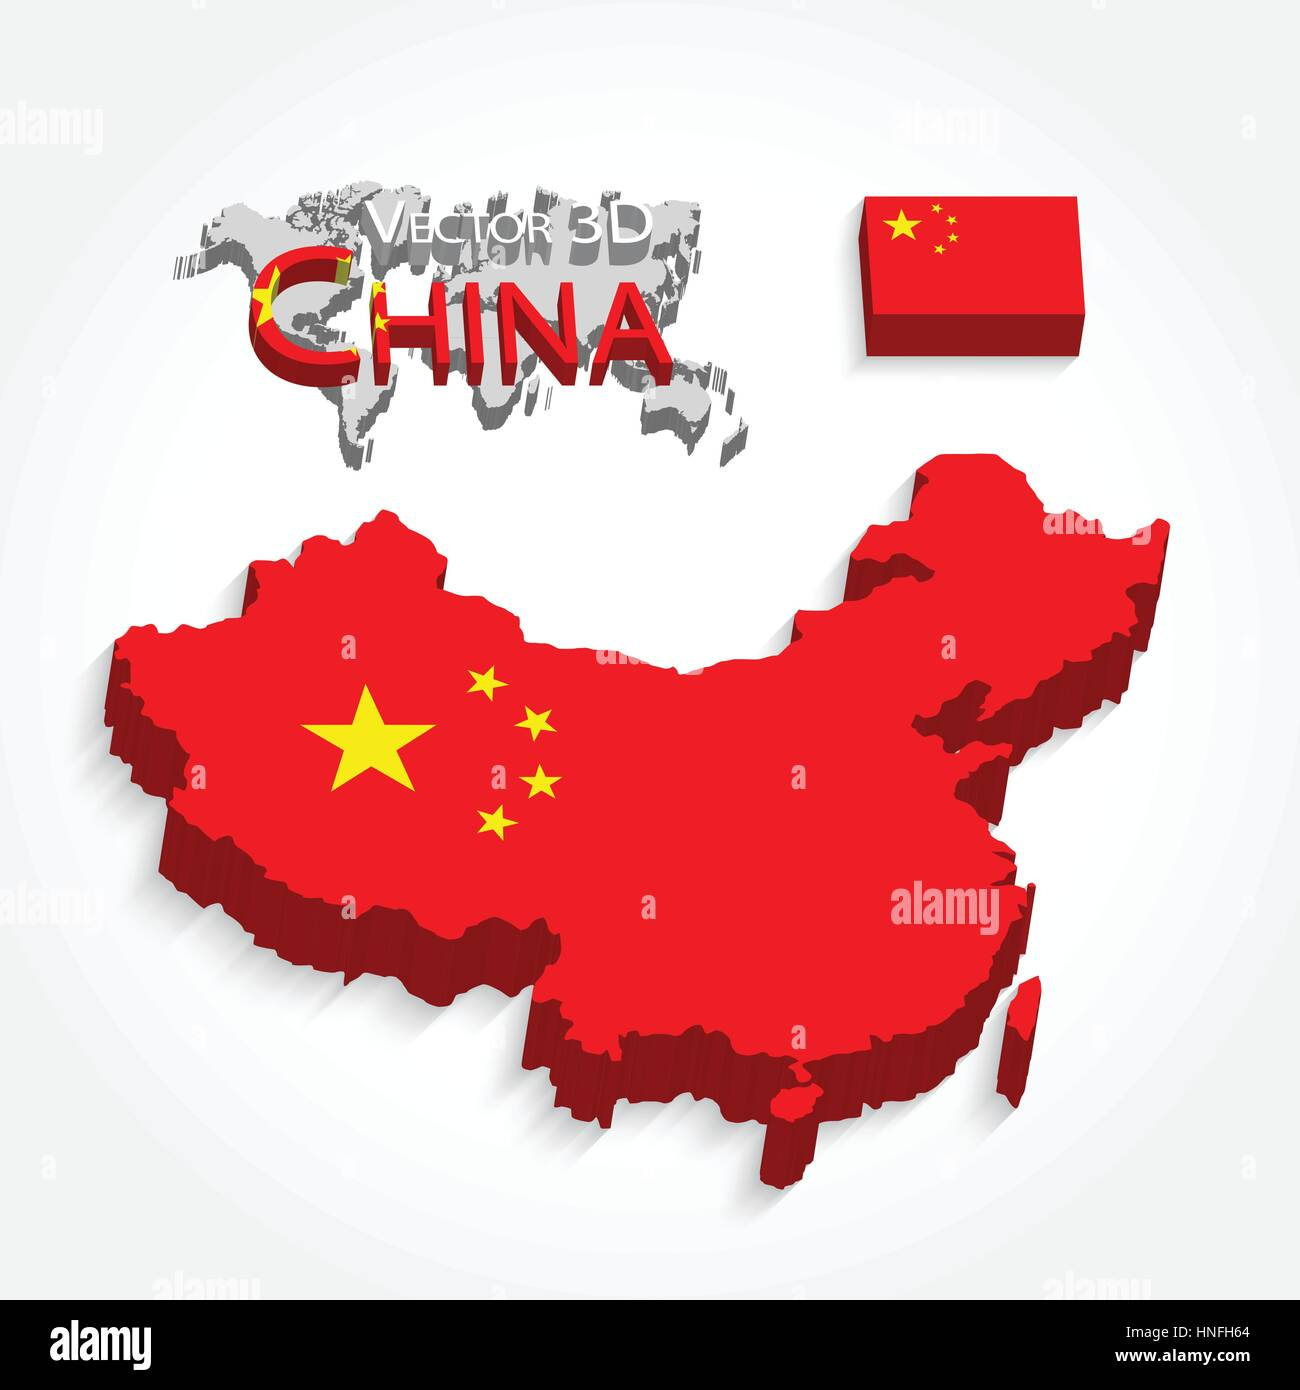 China 3D ( People 's Republic of China ) ( map and flag ) ( Transportation and tourism concept ) - Stock Image